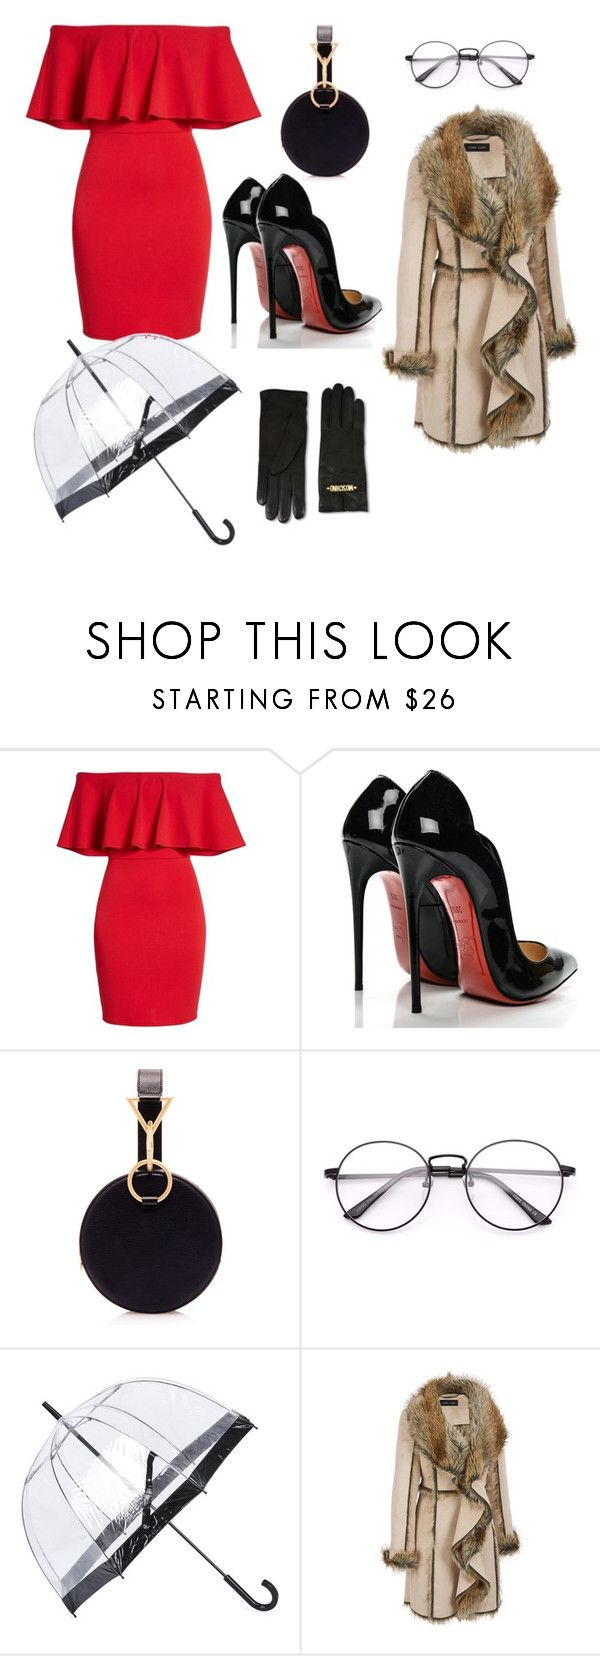 """Sans titre #8"" by selma-selma-kb ❤ liked on Polyvore featuring Soprano, Christian Louboutin, Tara Zadeh, Fulton, Moschino and plus size clothing"